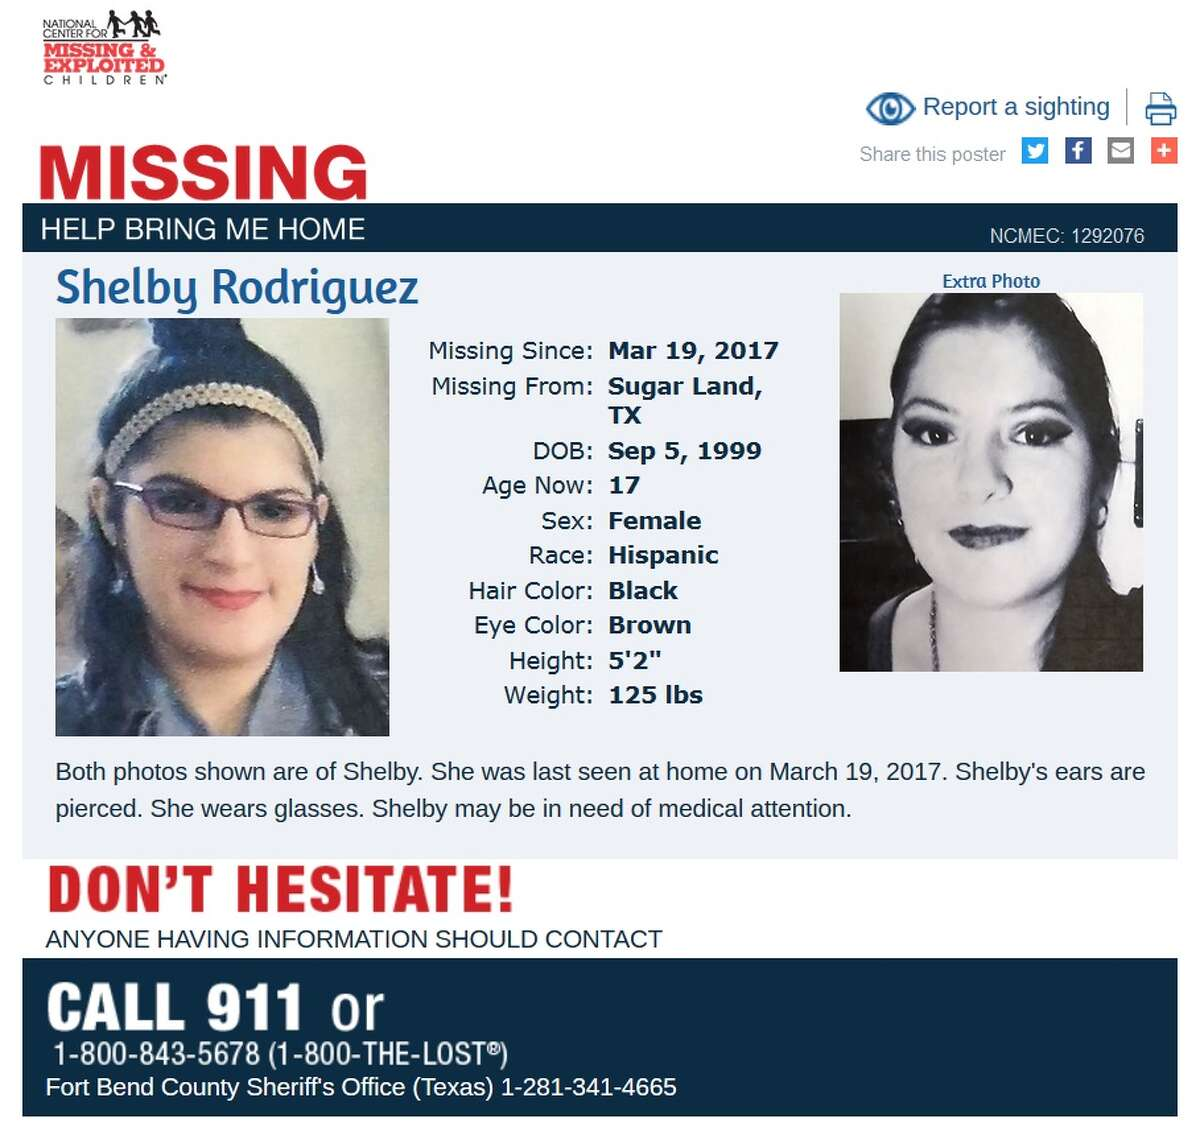 National Center for Missing and Exploited Children recent posters of Houston-area children as of June 9, 2017.